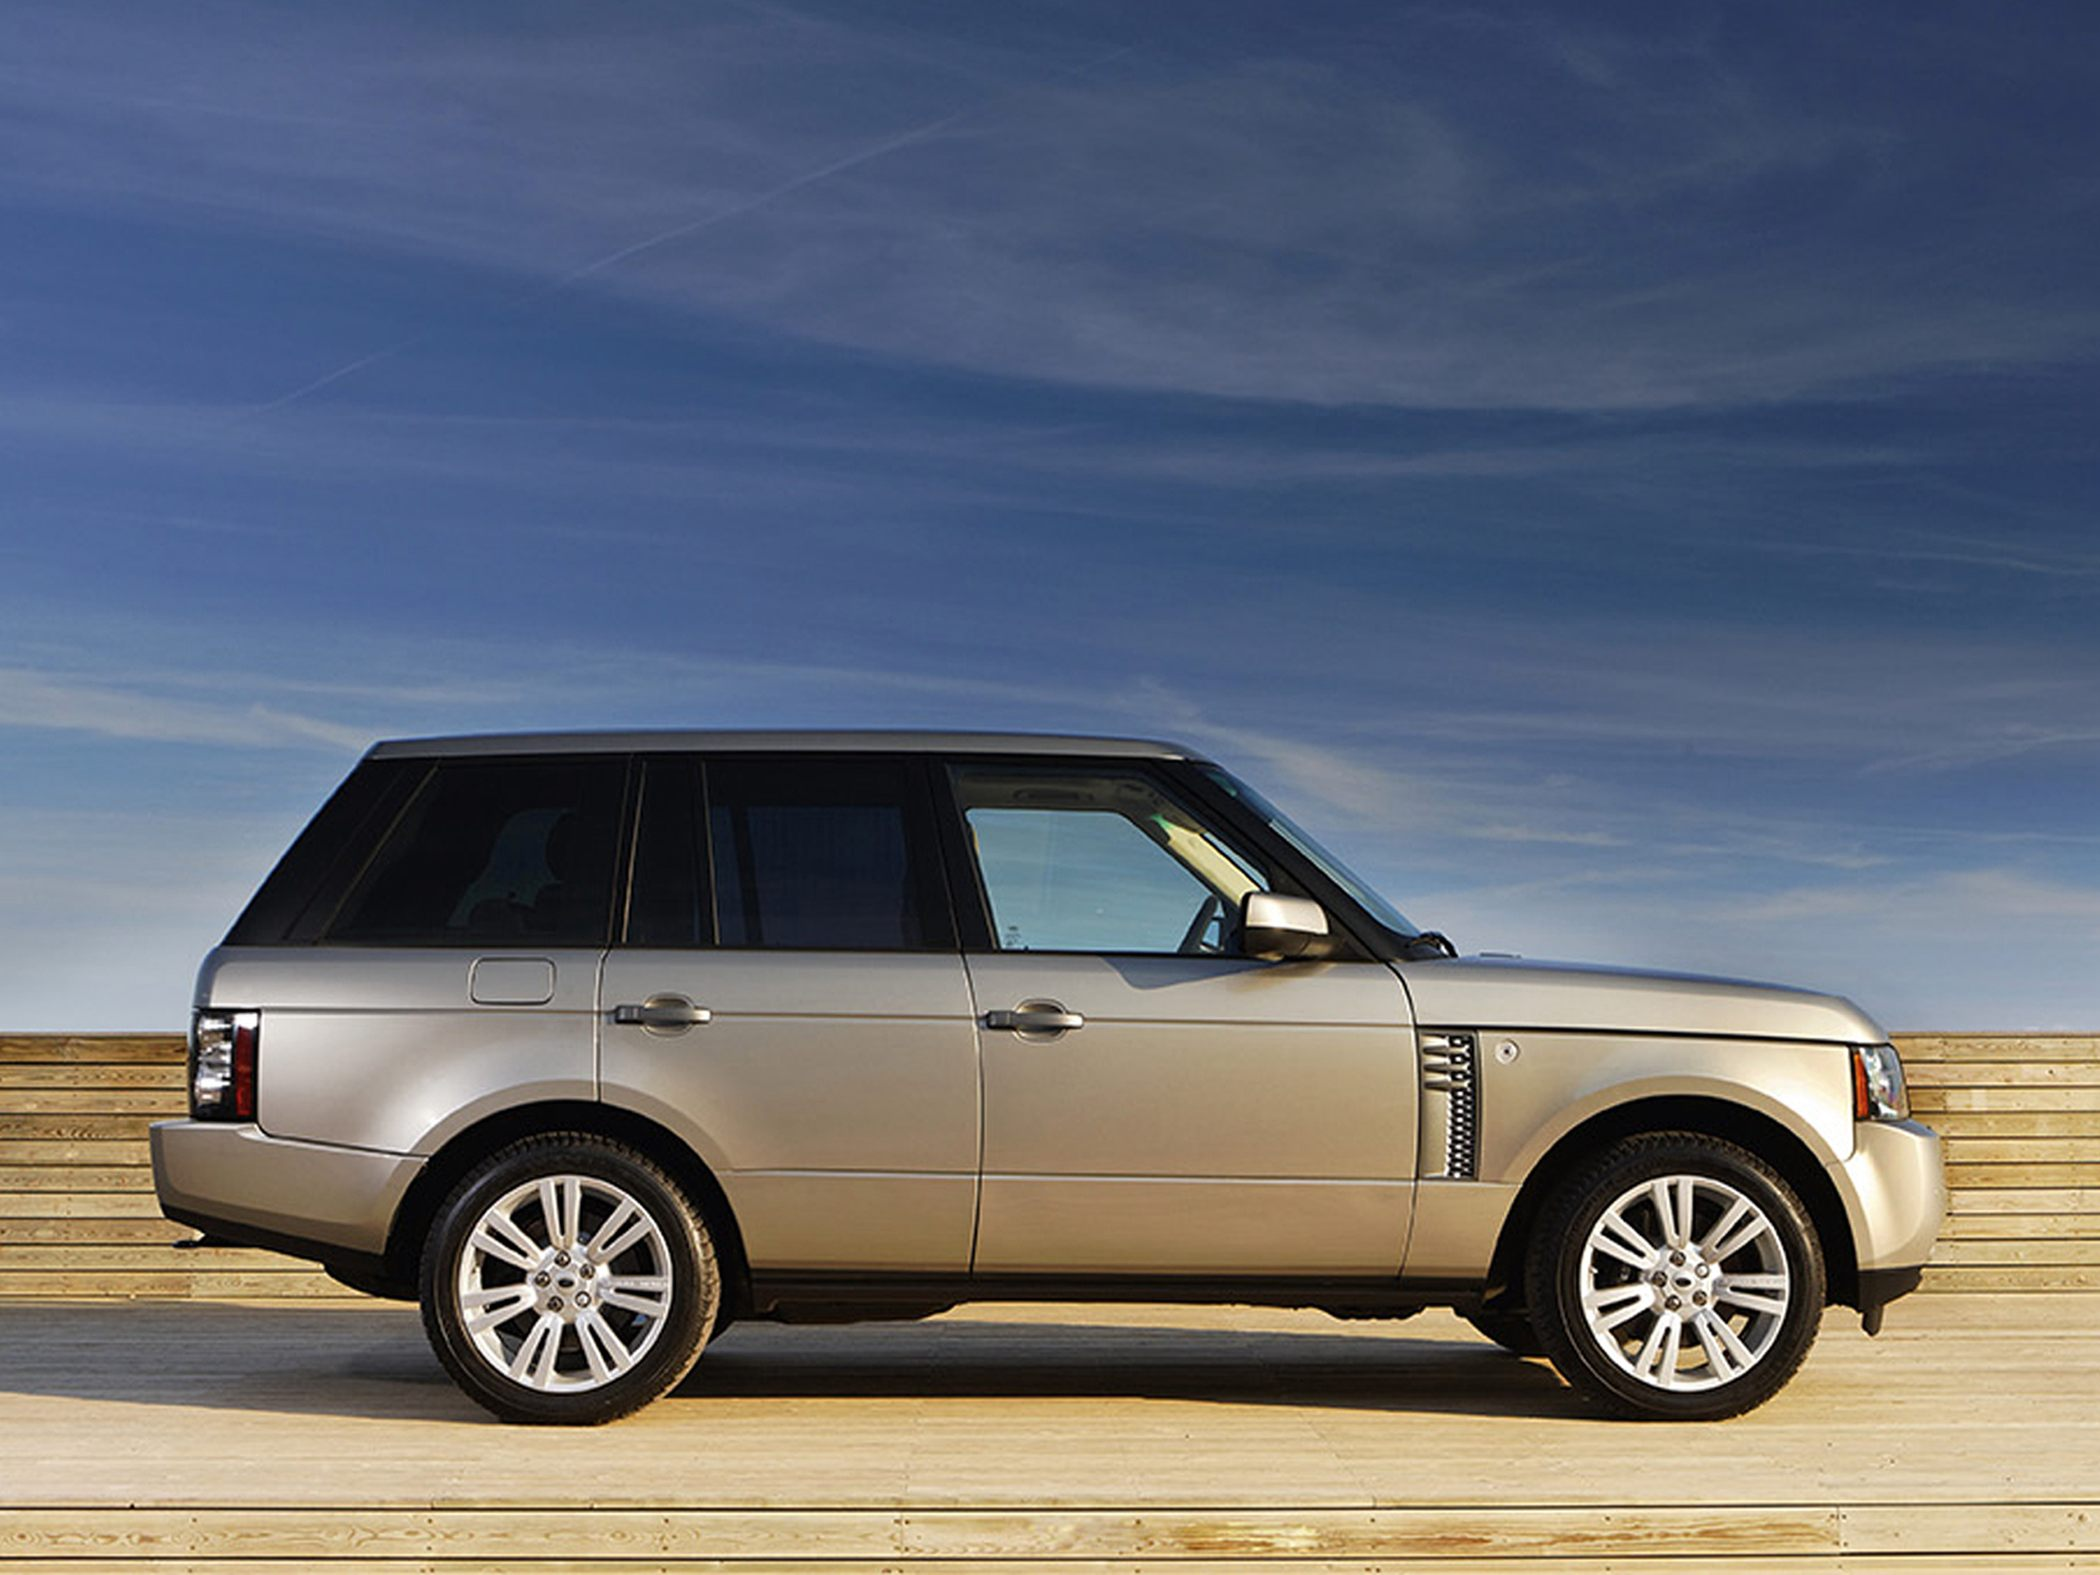 2010 Land Rover Range Rover Information and photos ZombieDrive